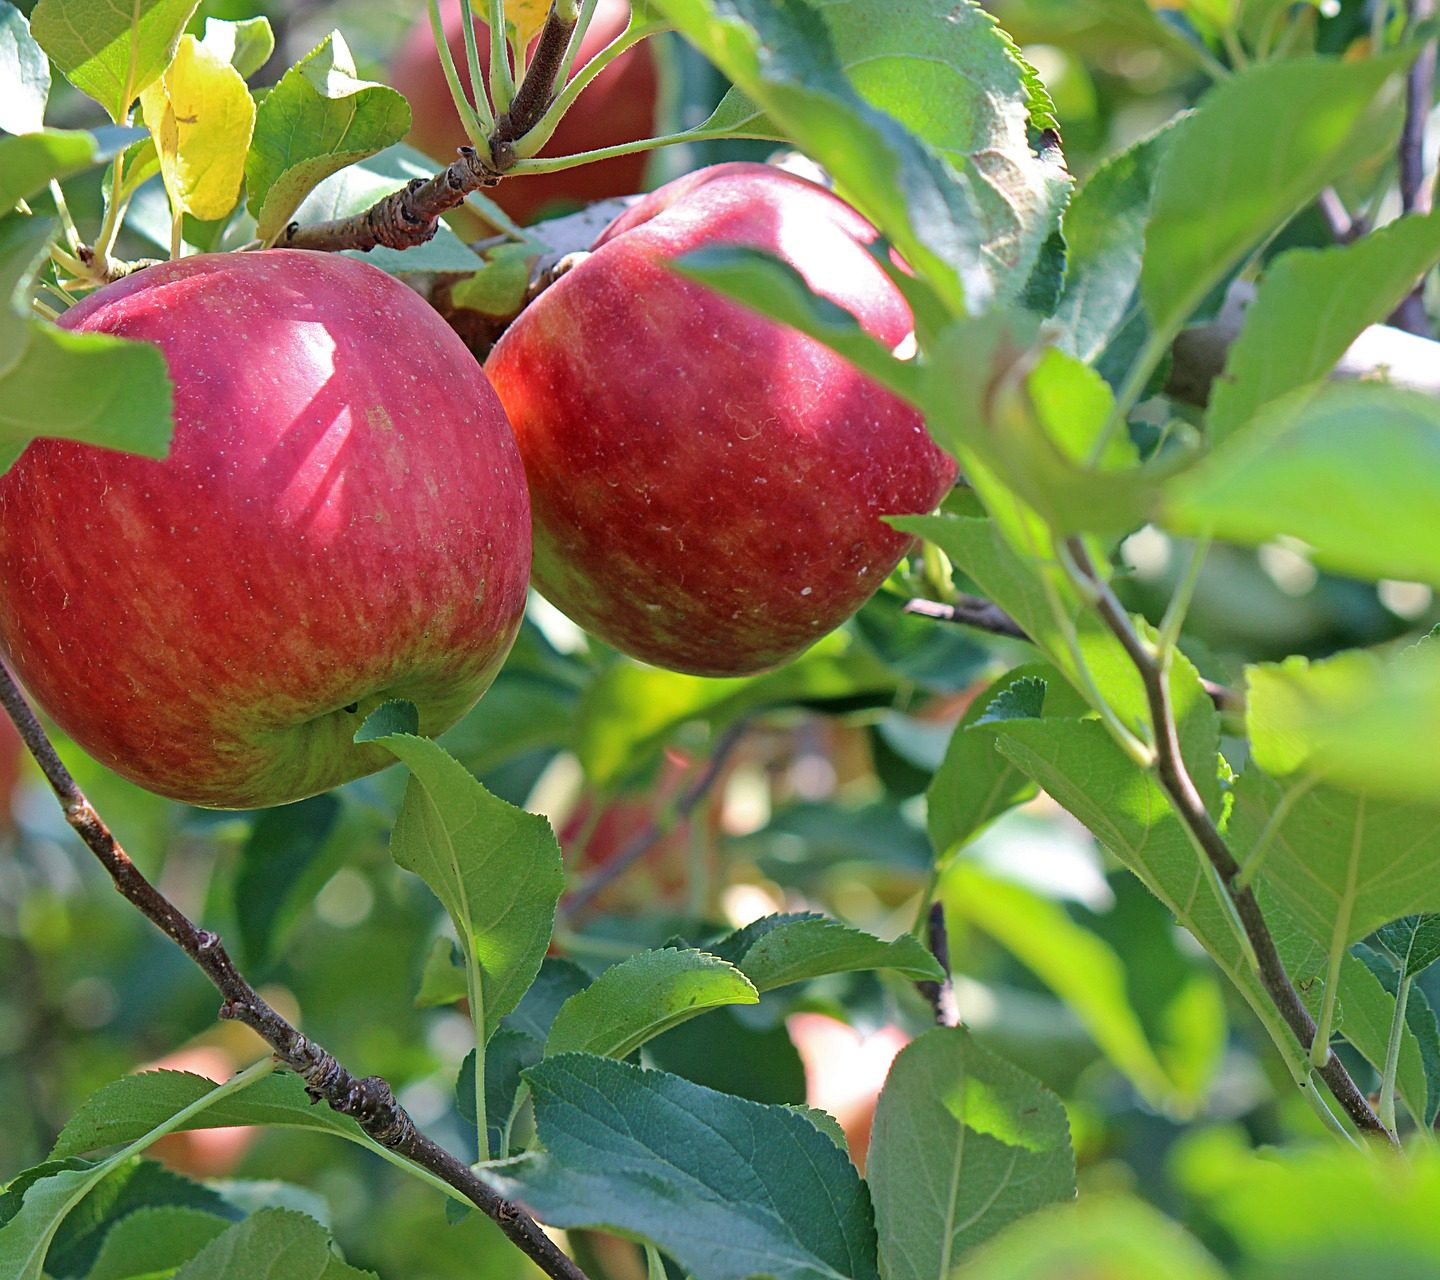 Scientists use CRISPR to develop apples Resistant to fire blight